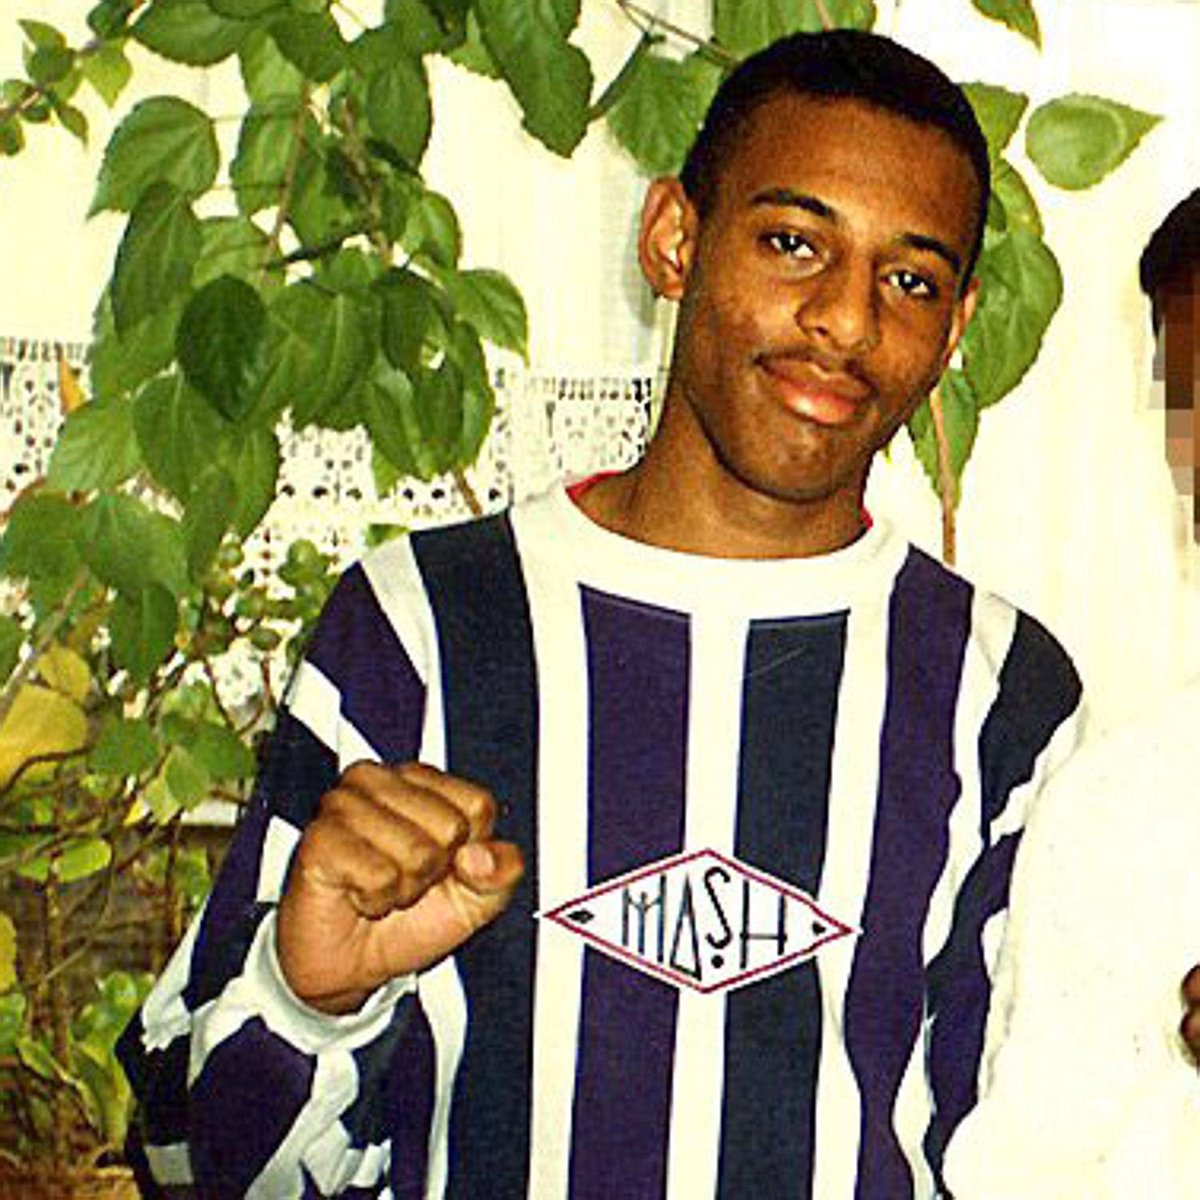 Remembering aspiring student Stephen Lawrence, who would've turned 42 today. Racism is an evil & we must end it. https://t.co/7D9oXcoX0m